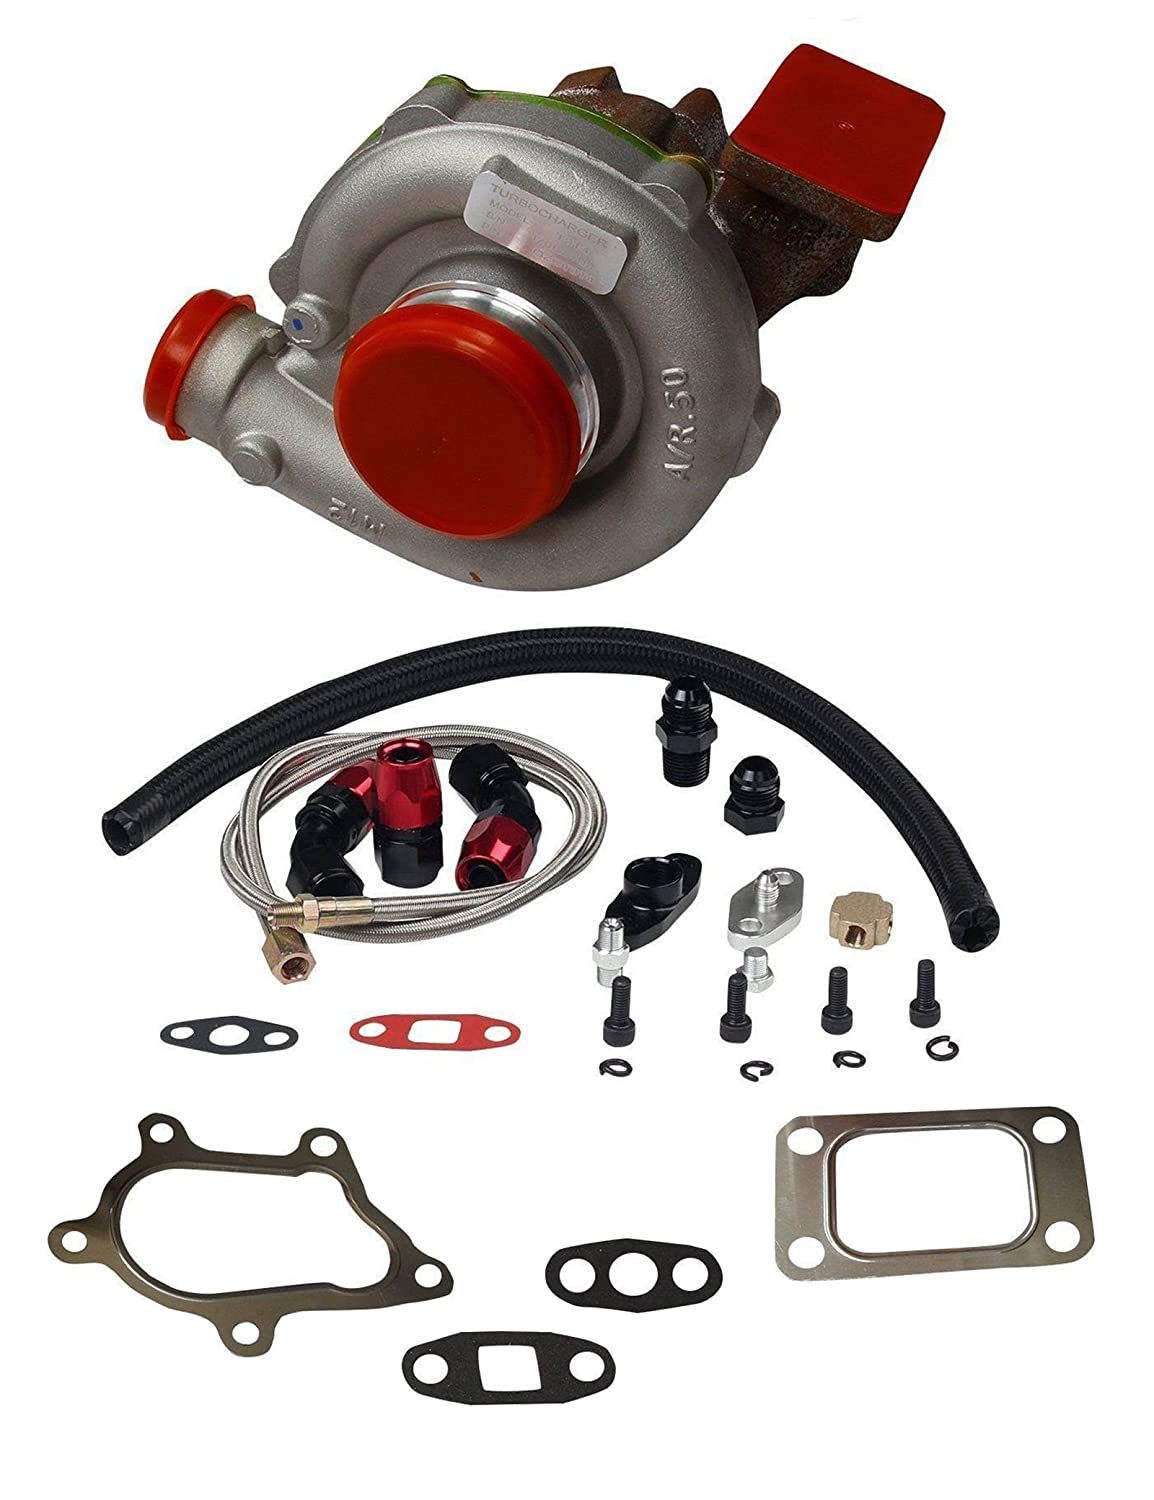 Trim Turbo Turbocharger Compressor 400 + Turbo Charger Oil Drain Return + Feed Line Kit for T04e T3/T4 A/R.63 Stage III Boost blackhorseracing